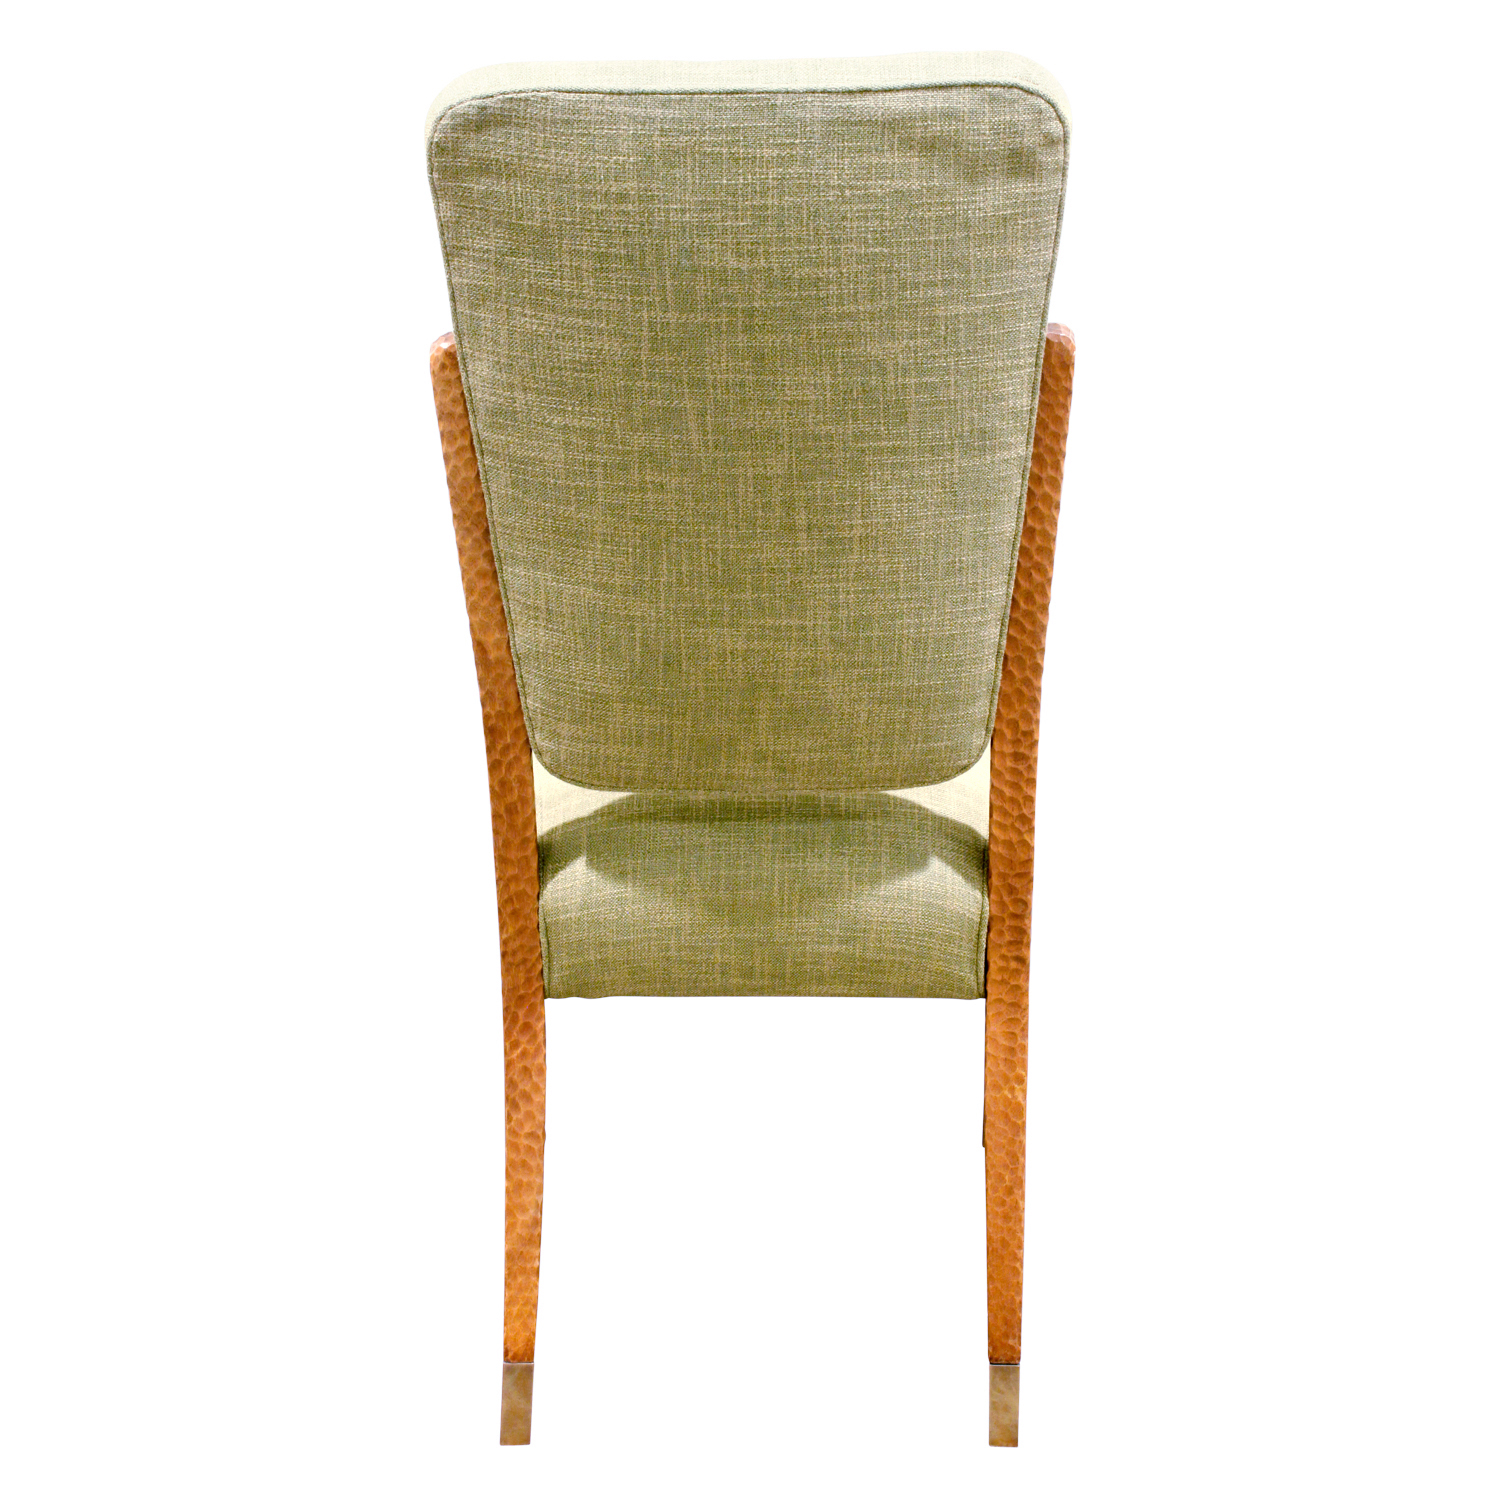 Buffa setof12 brass sabot diningchairs182 back.jpg